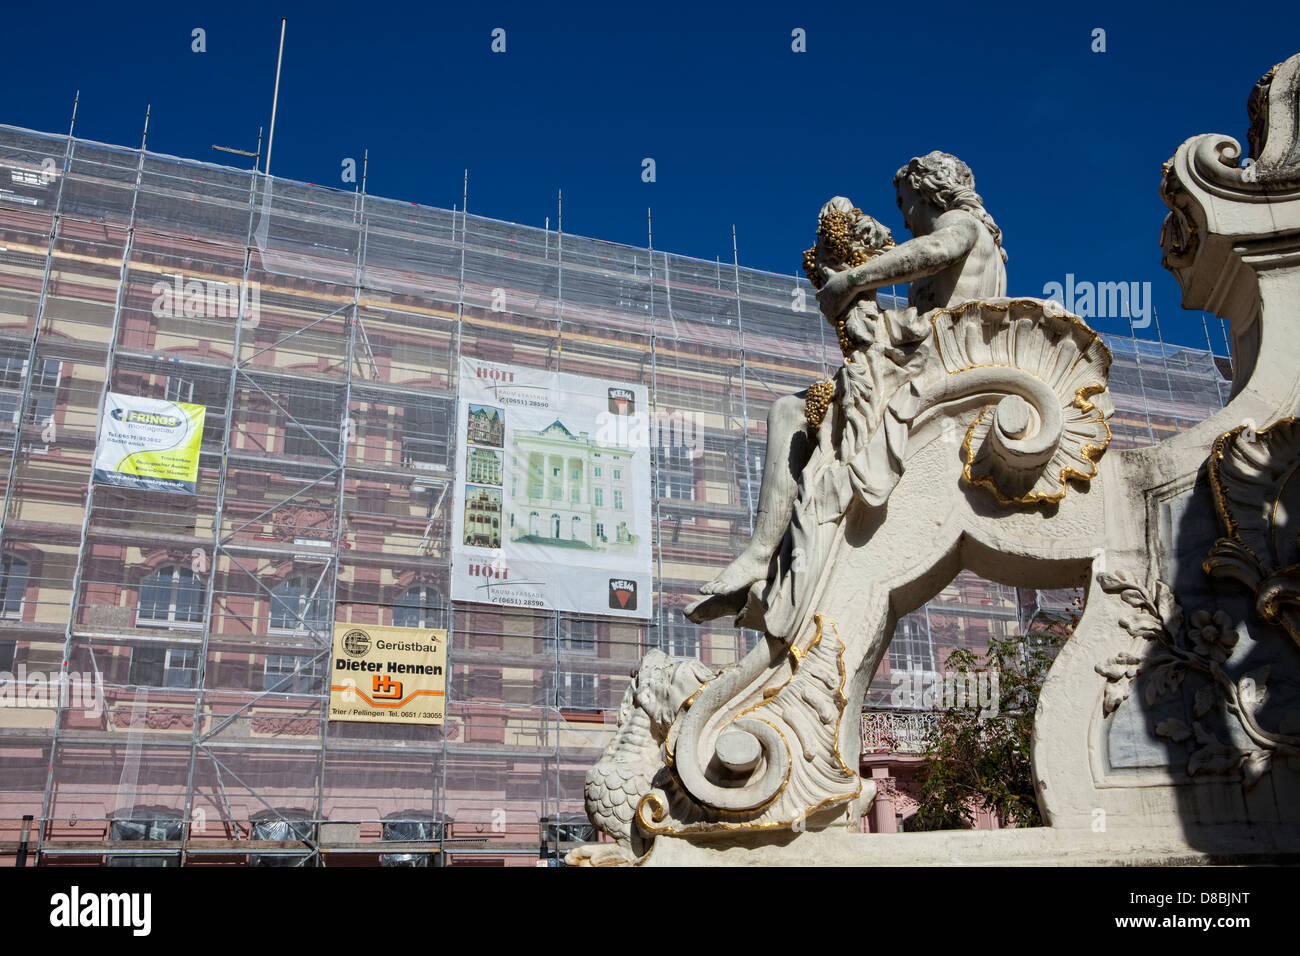 Building renovation, scaffolding, Georgsbrunnen fountain, Trier, Rhineland-Palatinate, Germany, Europe - Stock Image